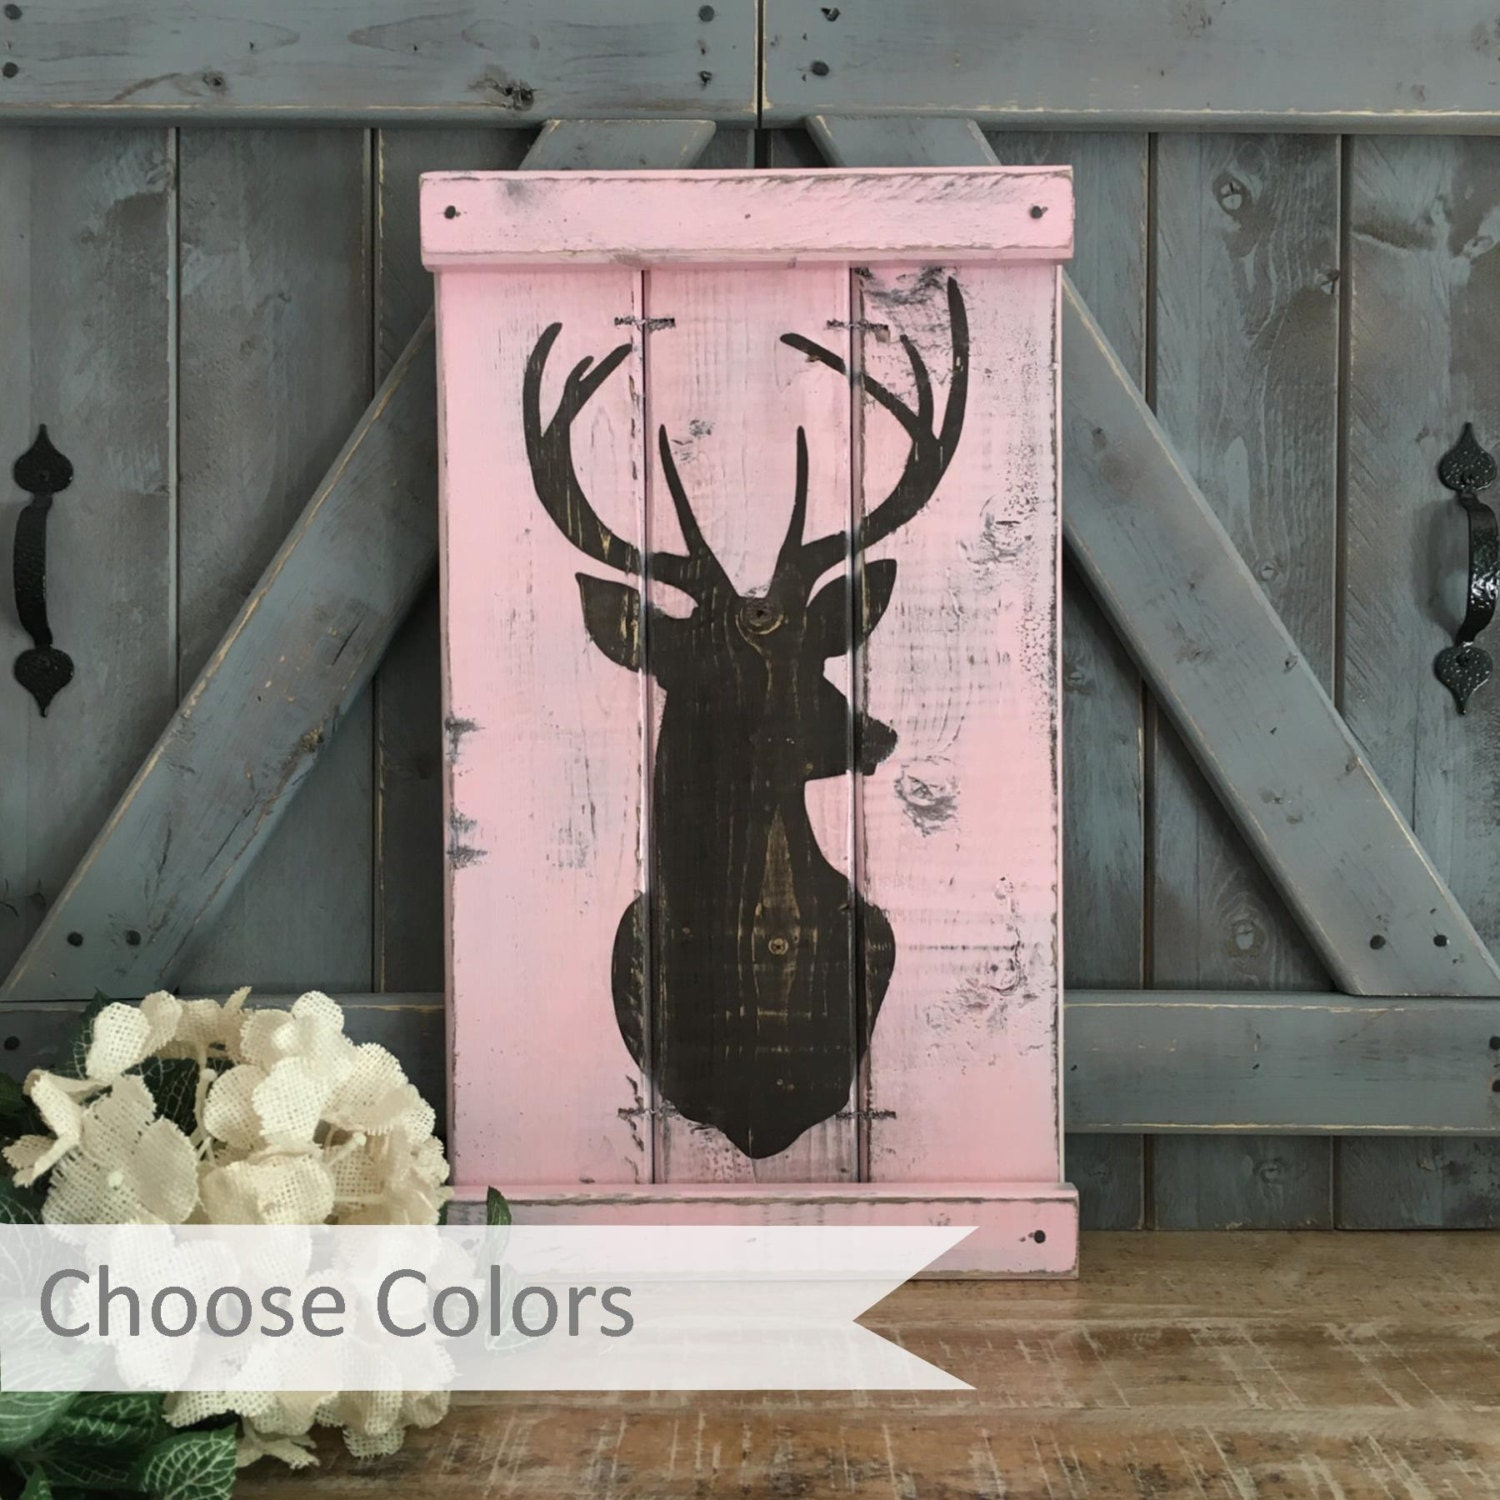 Hunting decor pink camo rustic nursery decor by for Pink camo decorations